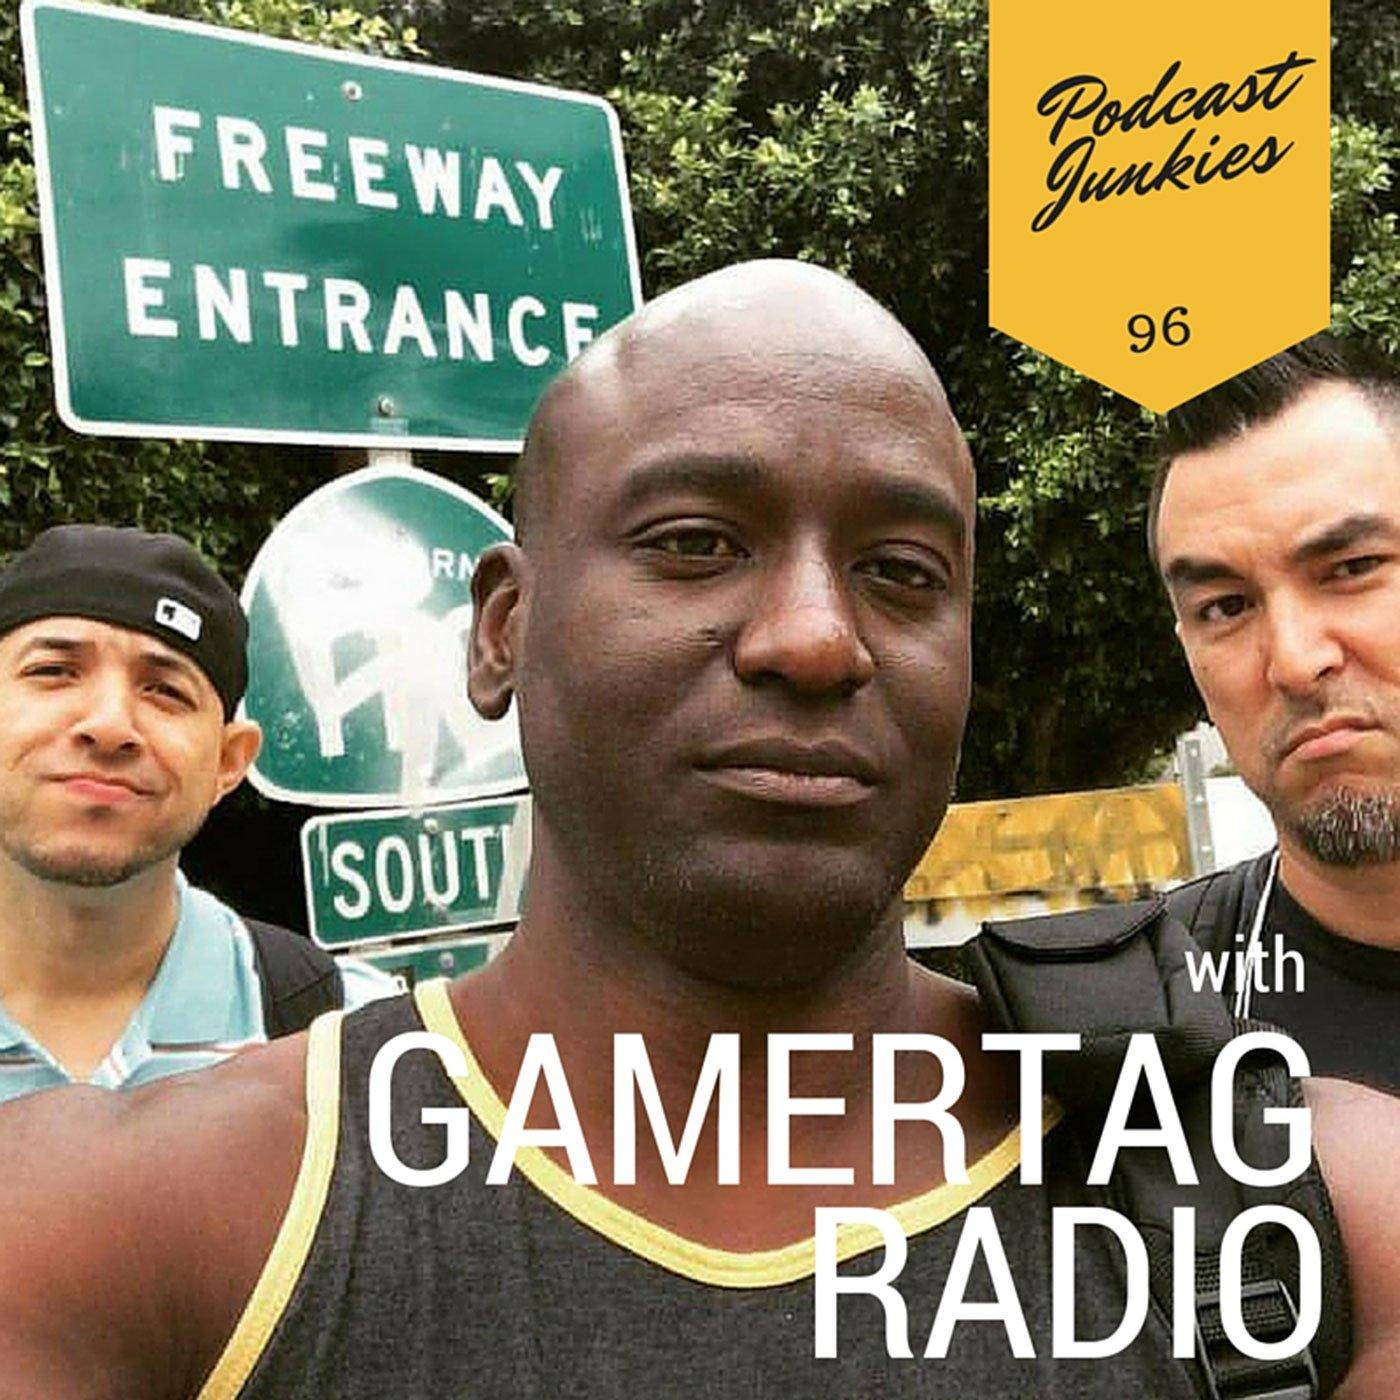 096 Gamertag Radio | The Three Brothers - Danny Pe?a, Peter Toledo, and Parris Lilly